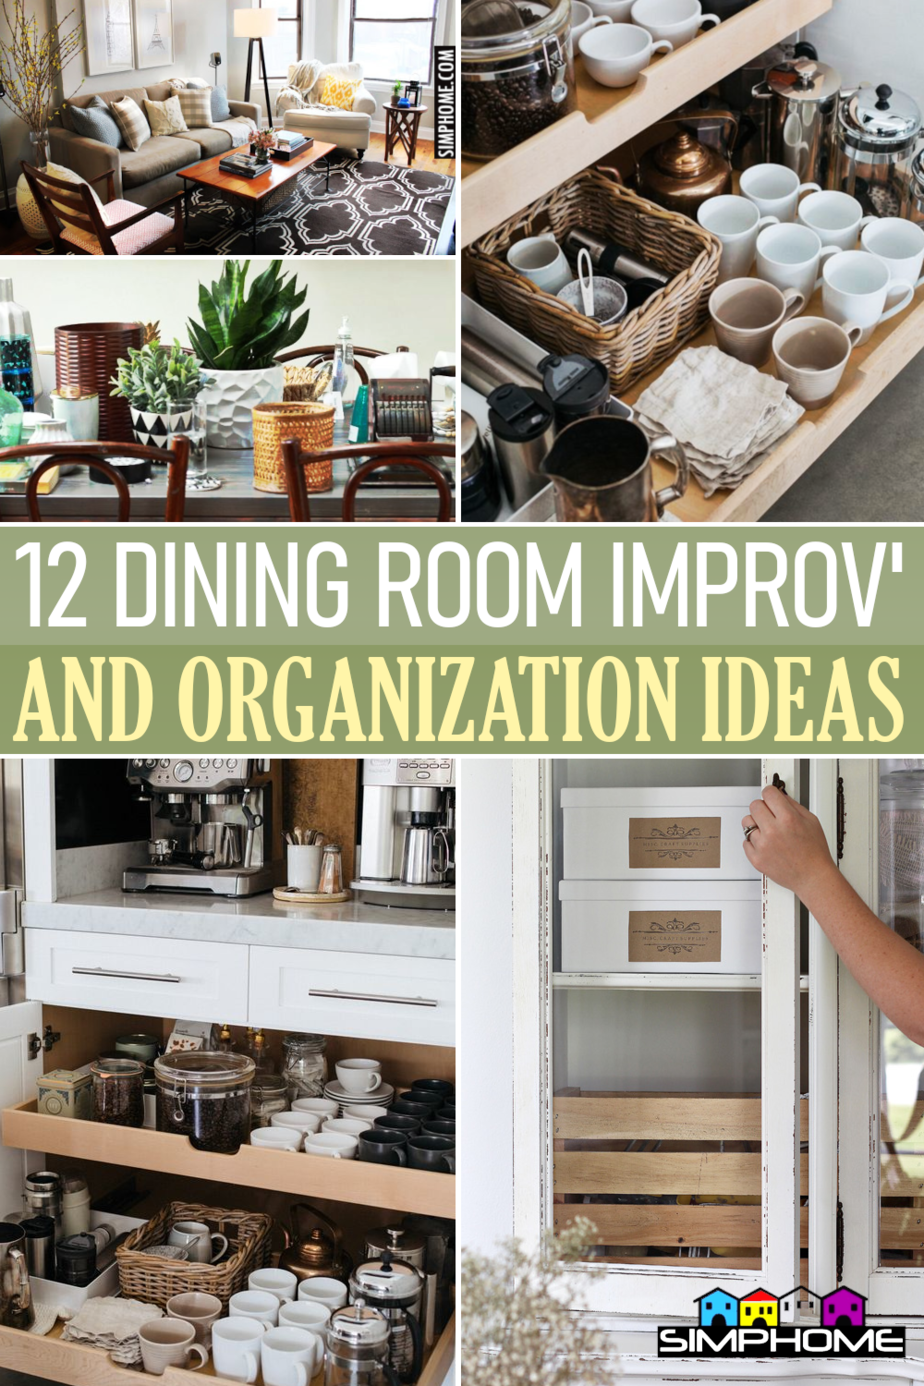 12 Dining Room Decorating and Organization Ideas via Simphome.comFeatured